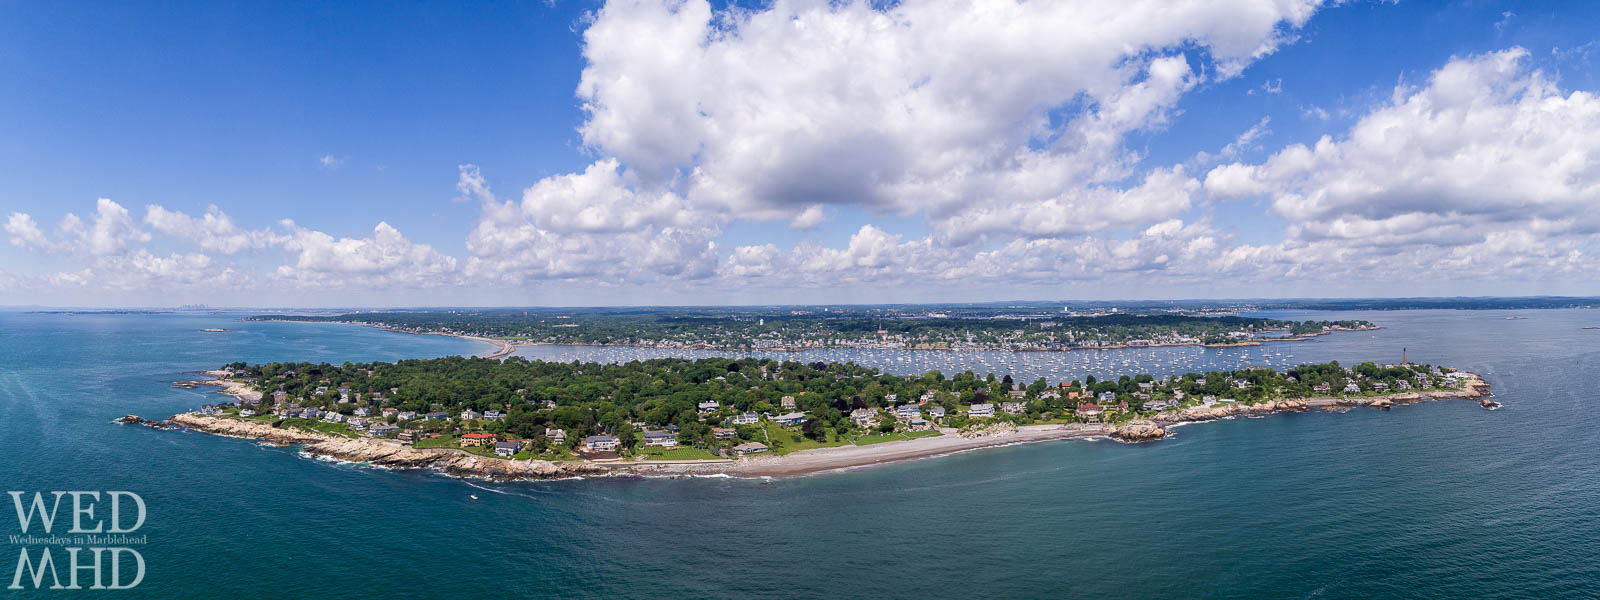 A panoramic view of Marblehead Neck and Harbor captured while flying the drone just off the coast